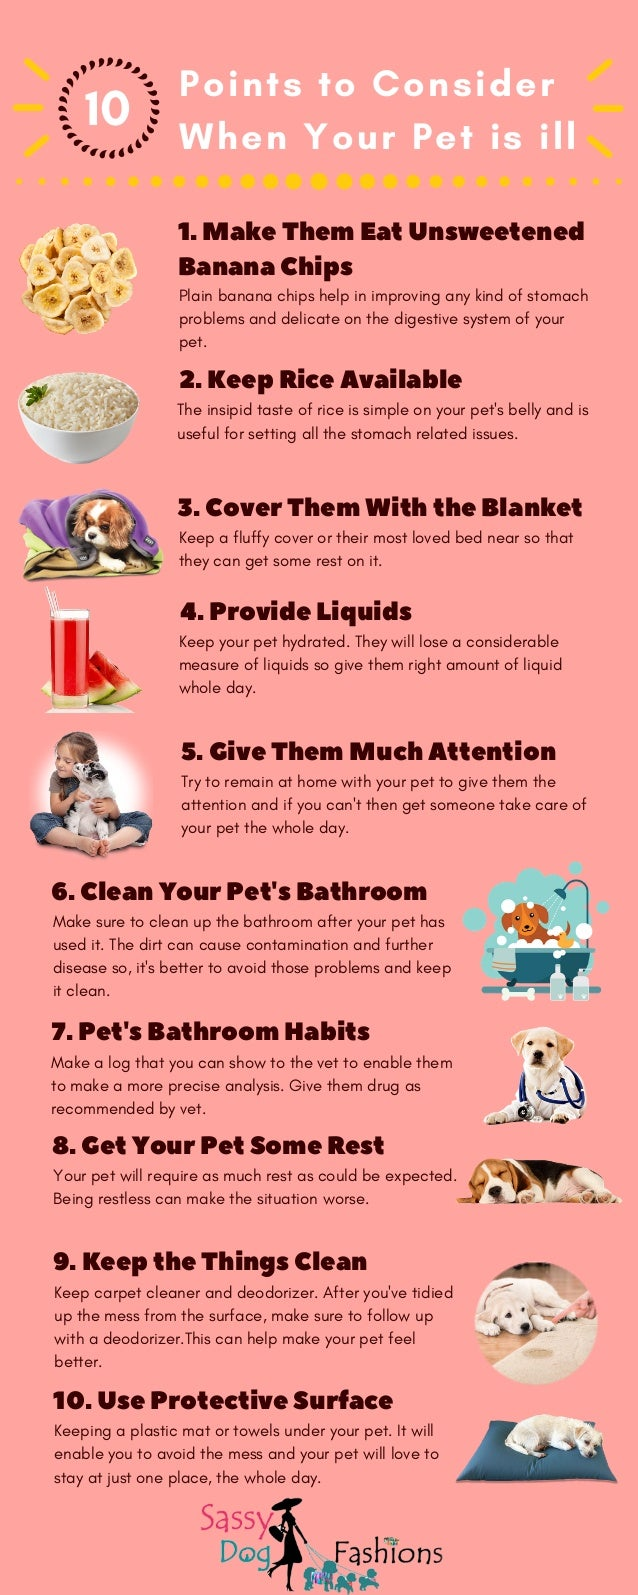 10 points to consider when your pet is ill!